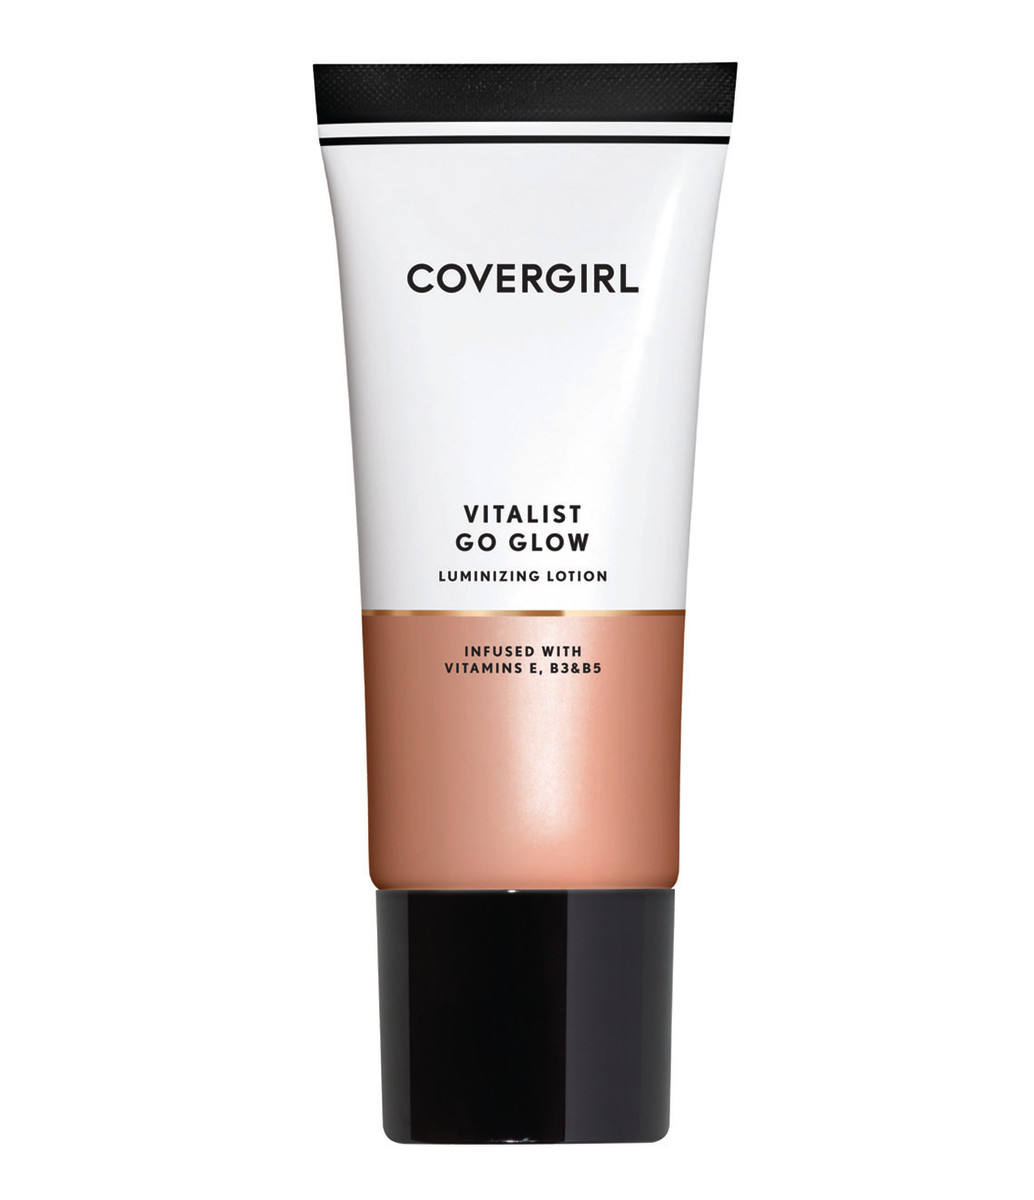 Covergirl Vitalist Go Glow Luminizing Lotion-BEAUTYGEEKS